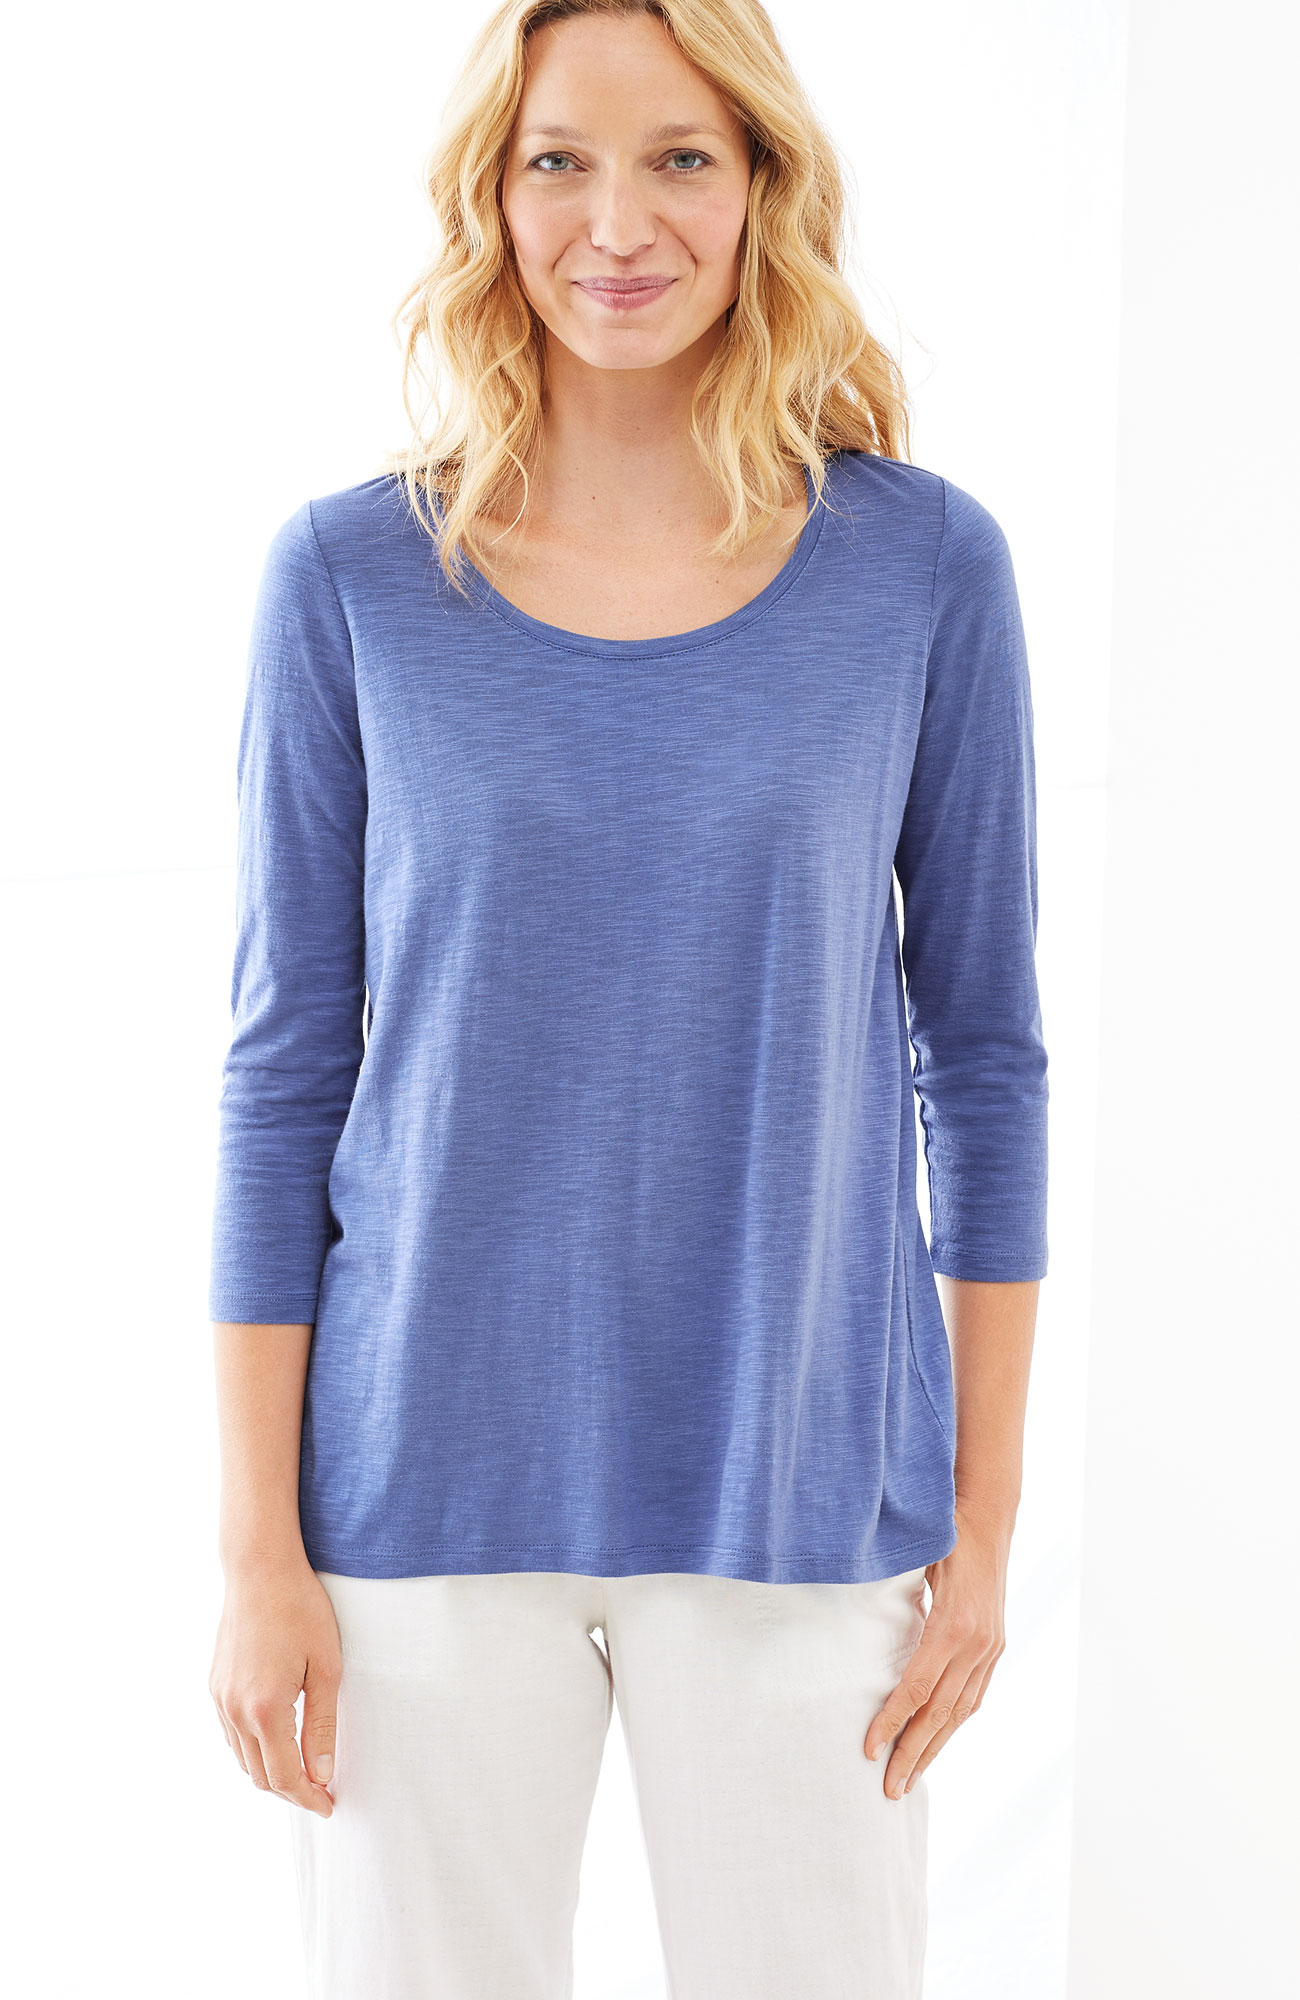 elliptical shirred-back tee